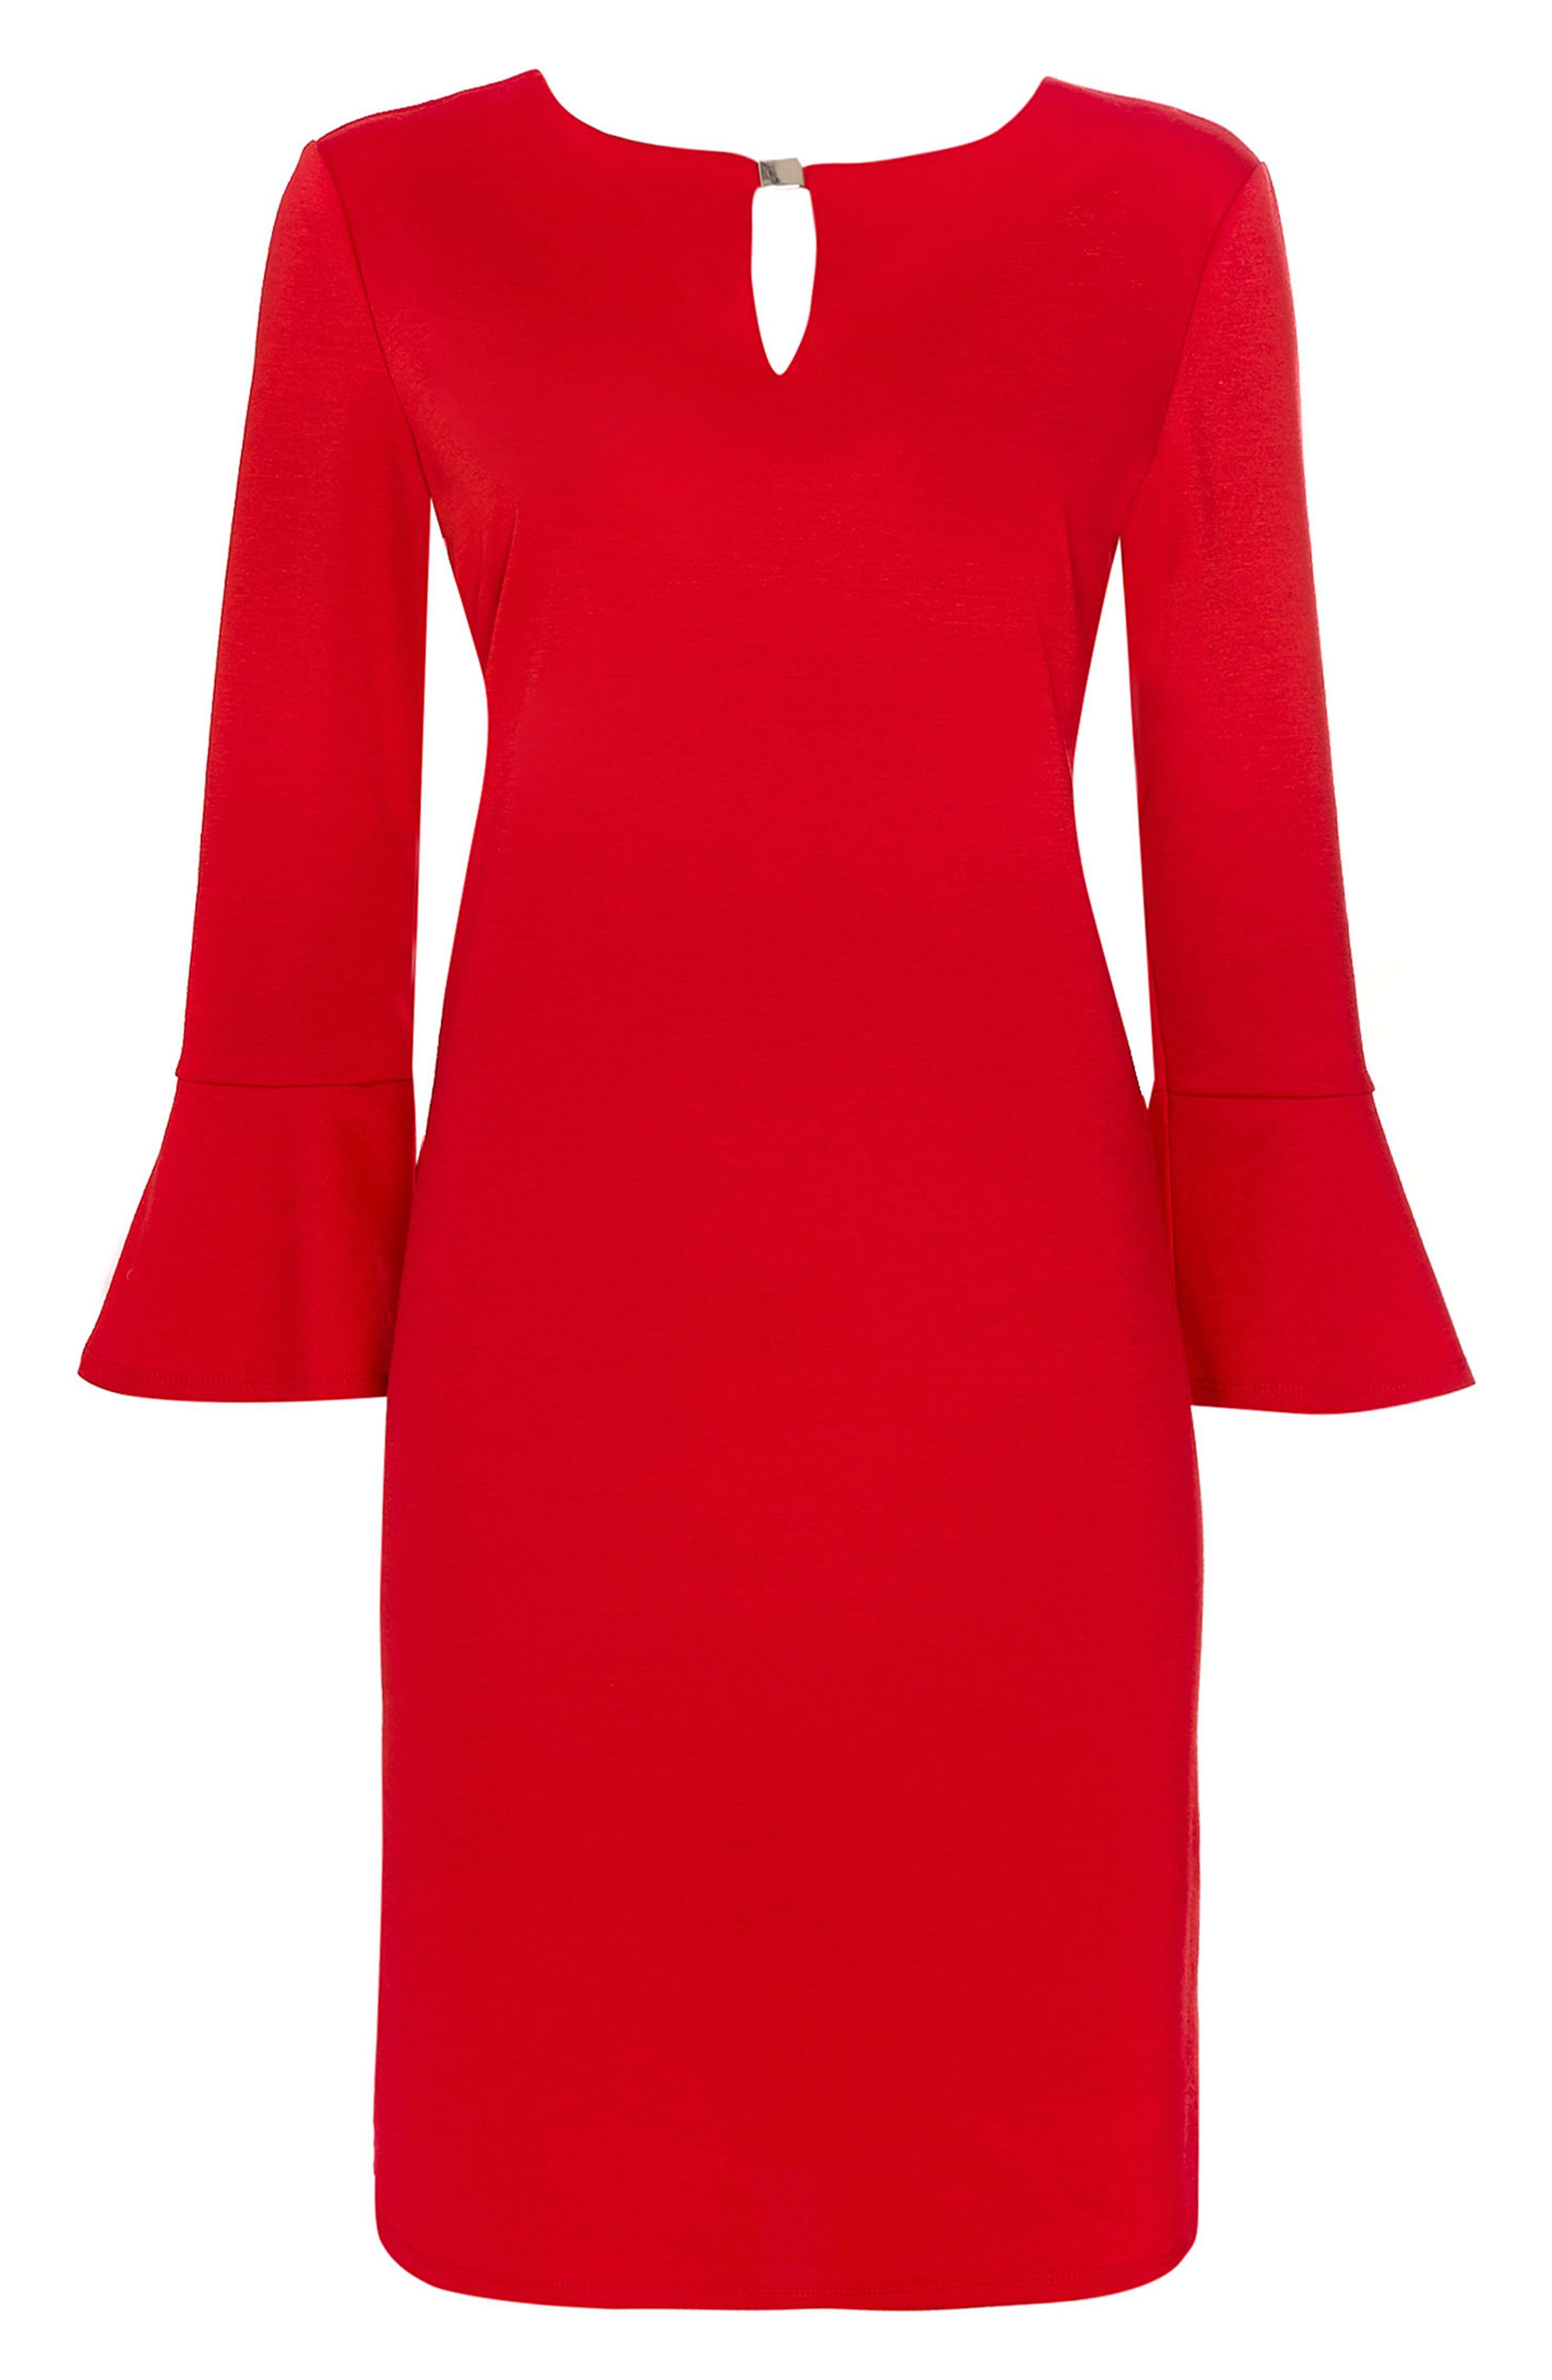 Bell Sleeve Keyhole Neck Dress,                             Alternate thumbnail 5, color,                             Red